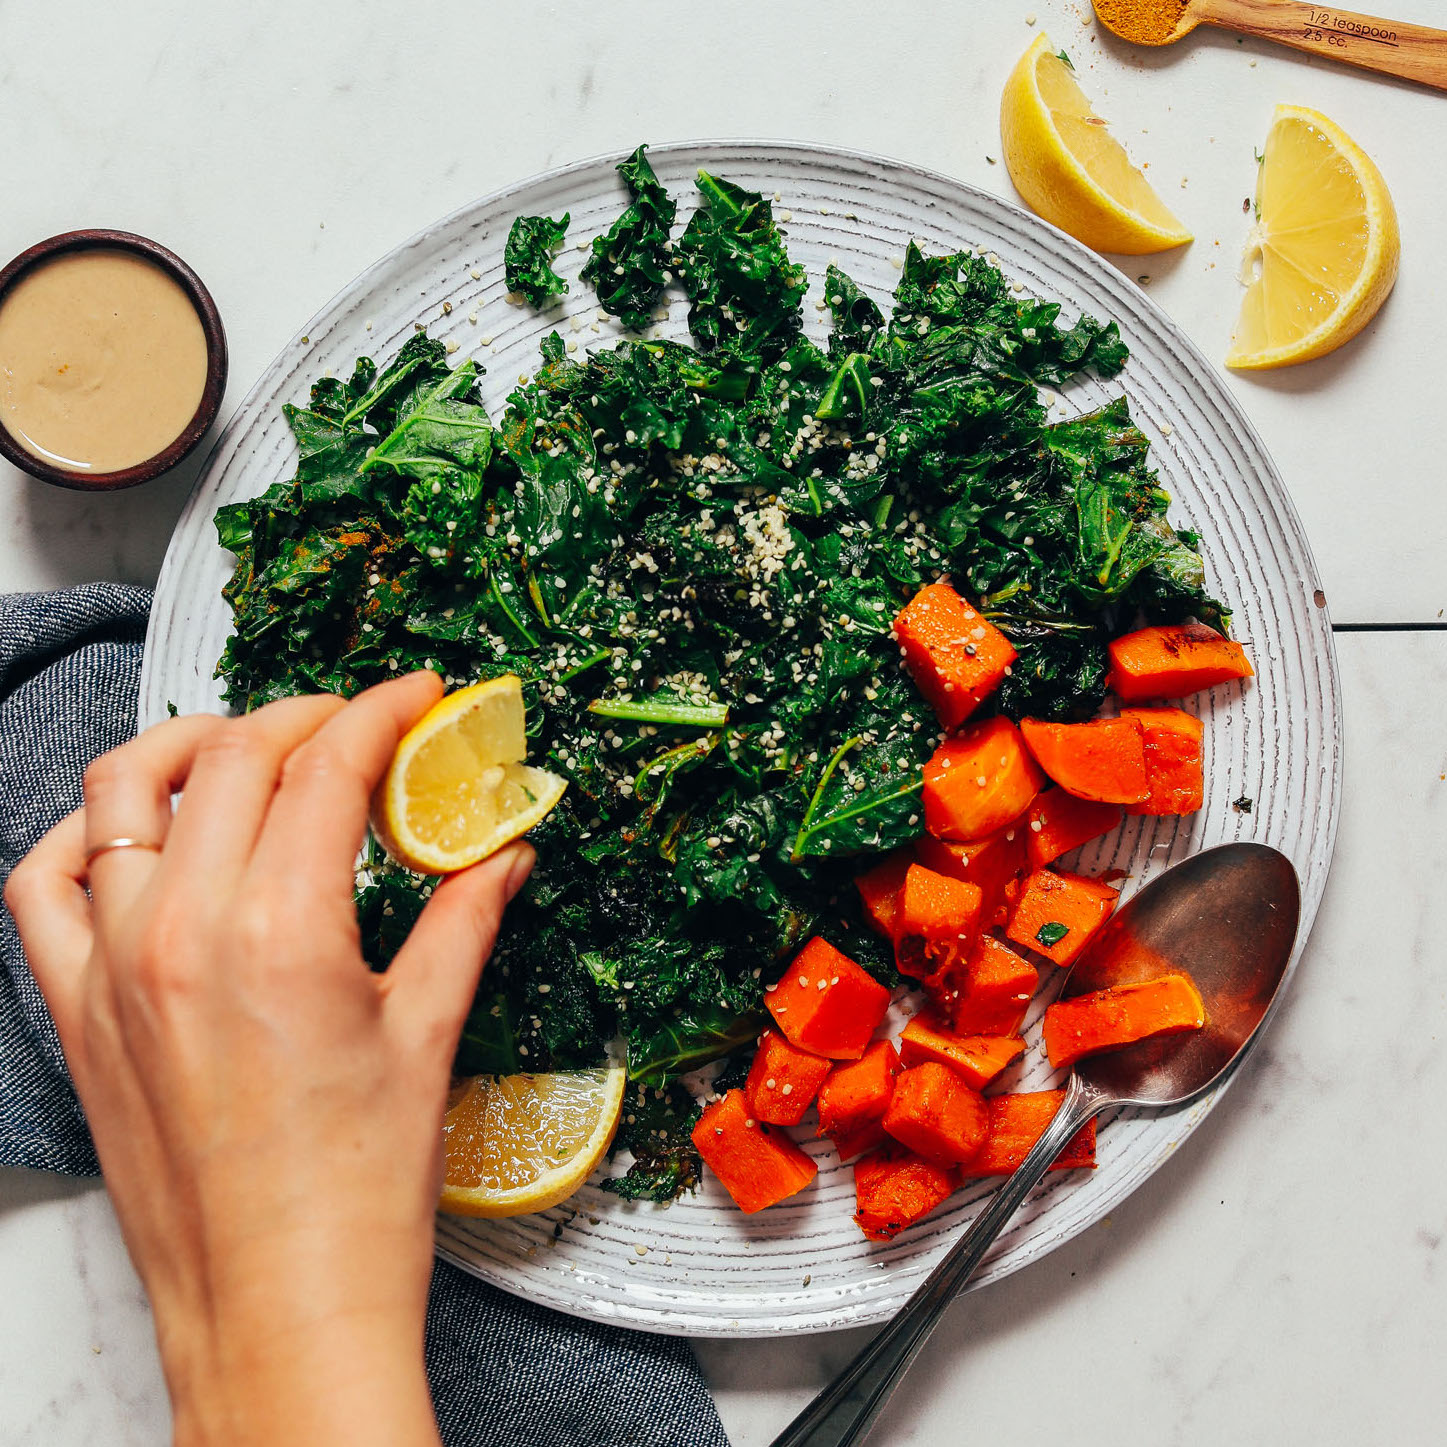 Squeeze a lemon wedge over sautéed kale